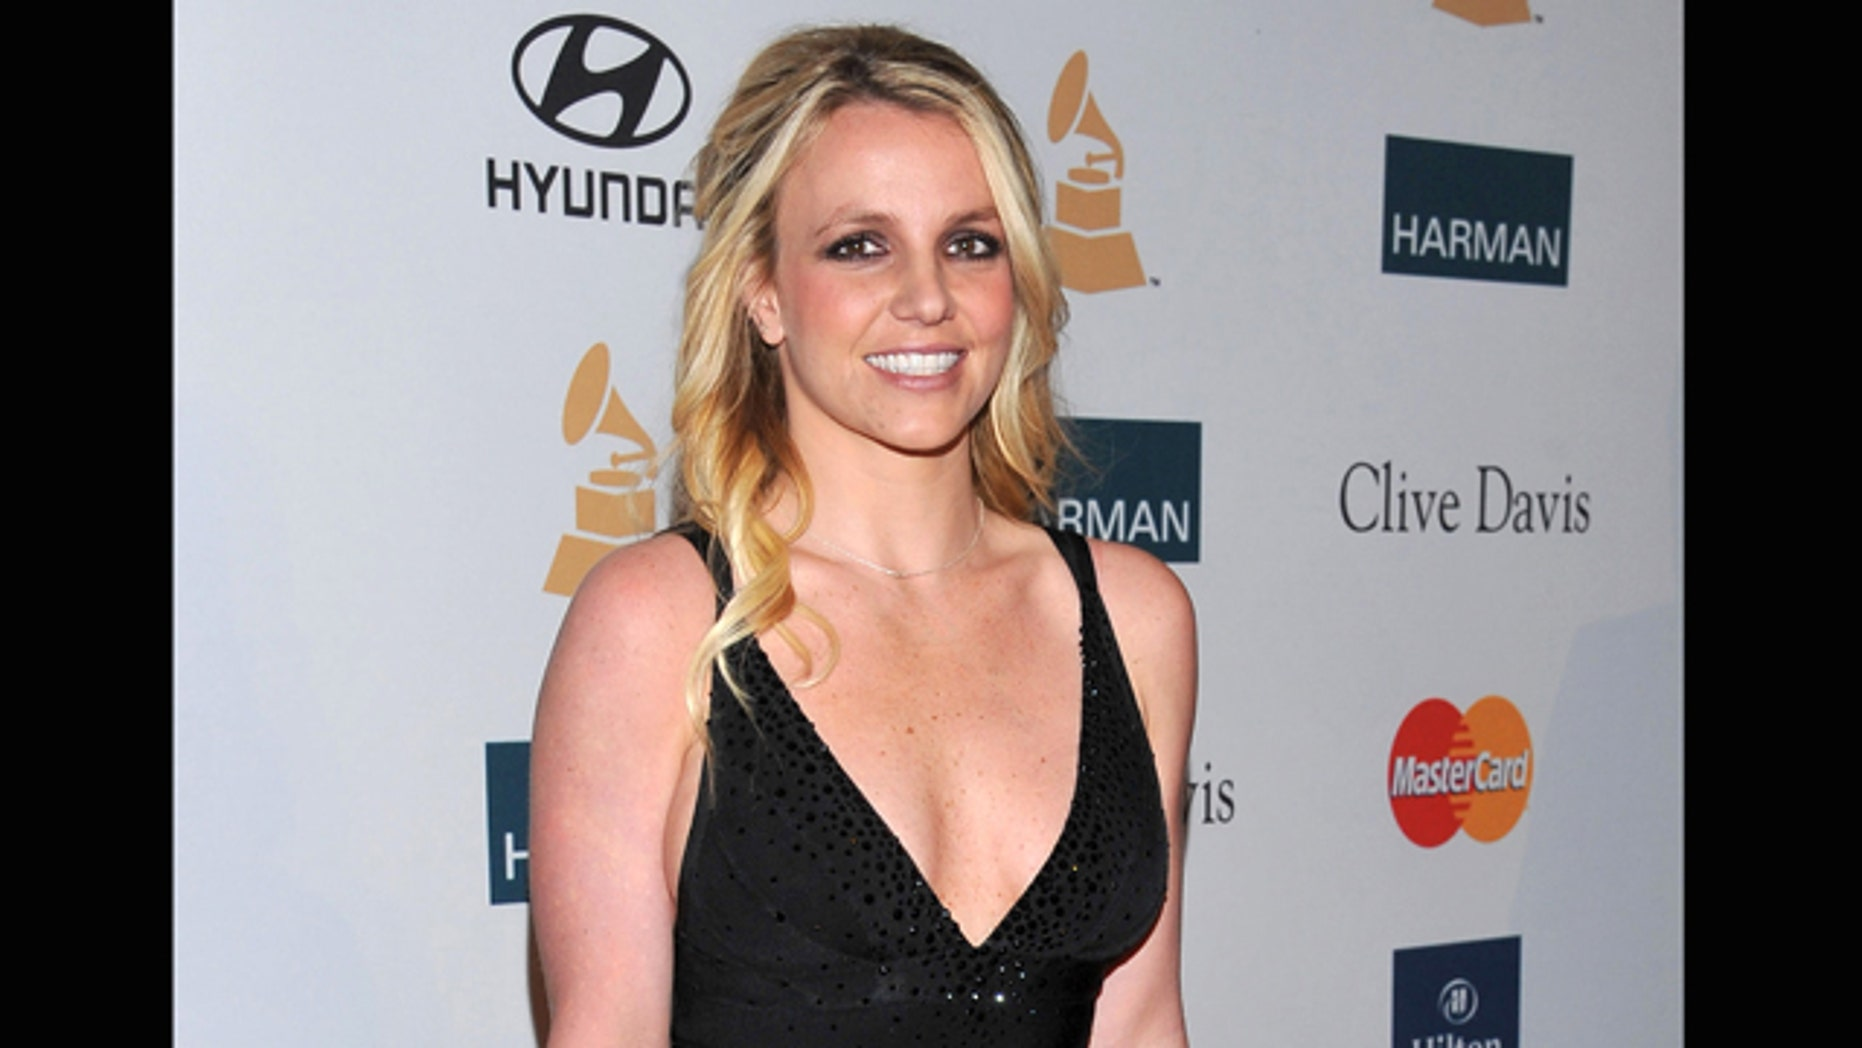 Feb. 11, 2012: File photo, singer Britney Spears arrives at the Pre-GRAMMY Gala & Salute to Industry Icons with Clive Davis honoring Richard Branson in Beverly Hills, Calif.